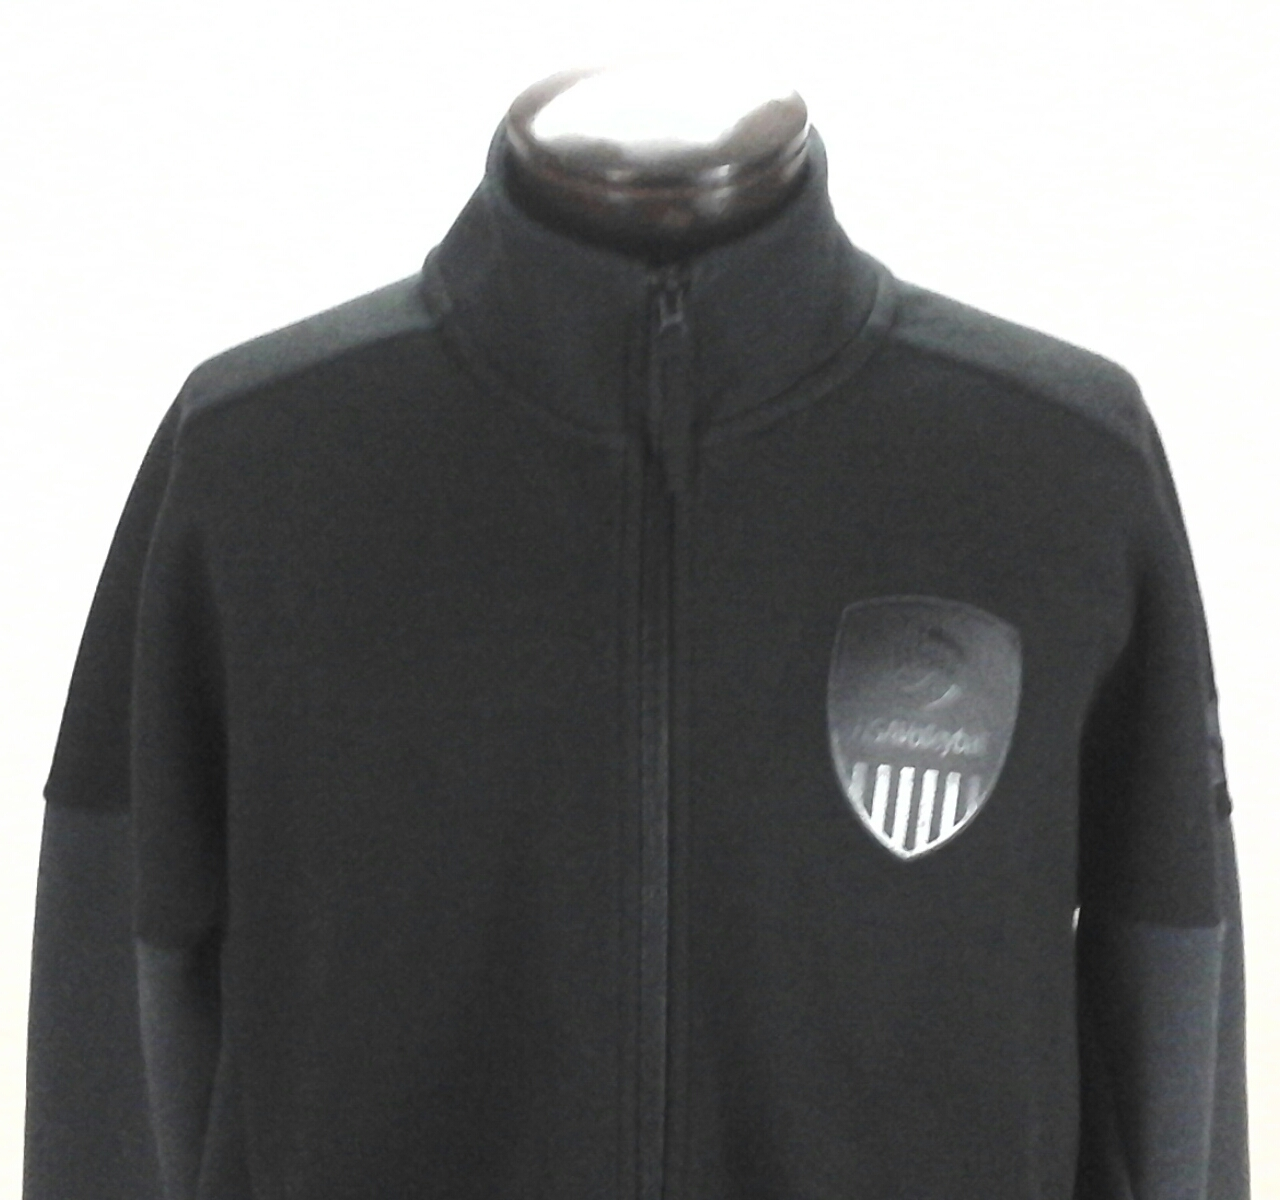 87a5986b699c ADIDAS USA Volleyball Jacket Zip Up Black w Gray Official CF1417 Men's New